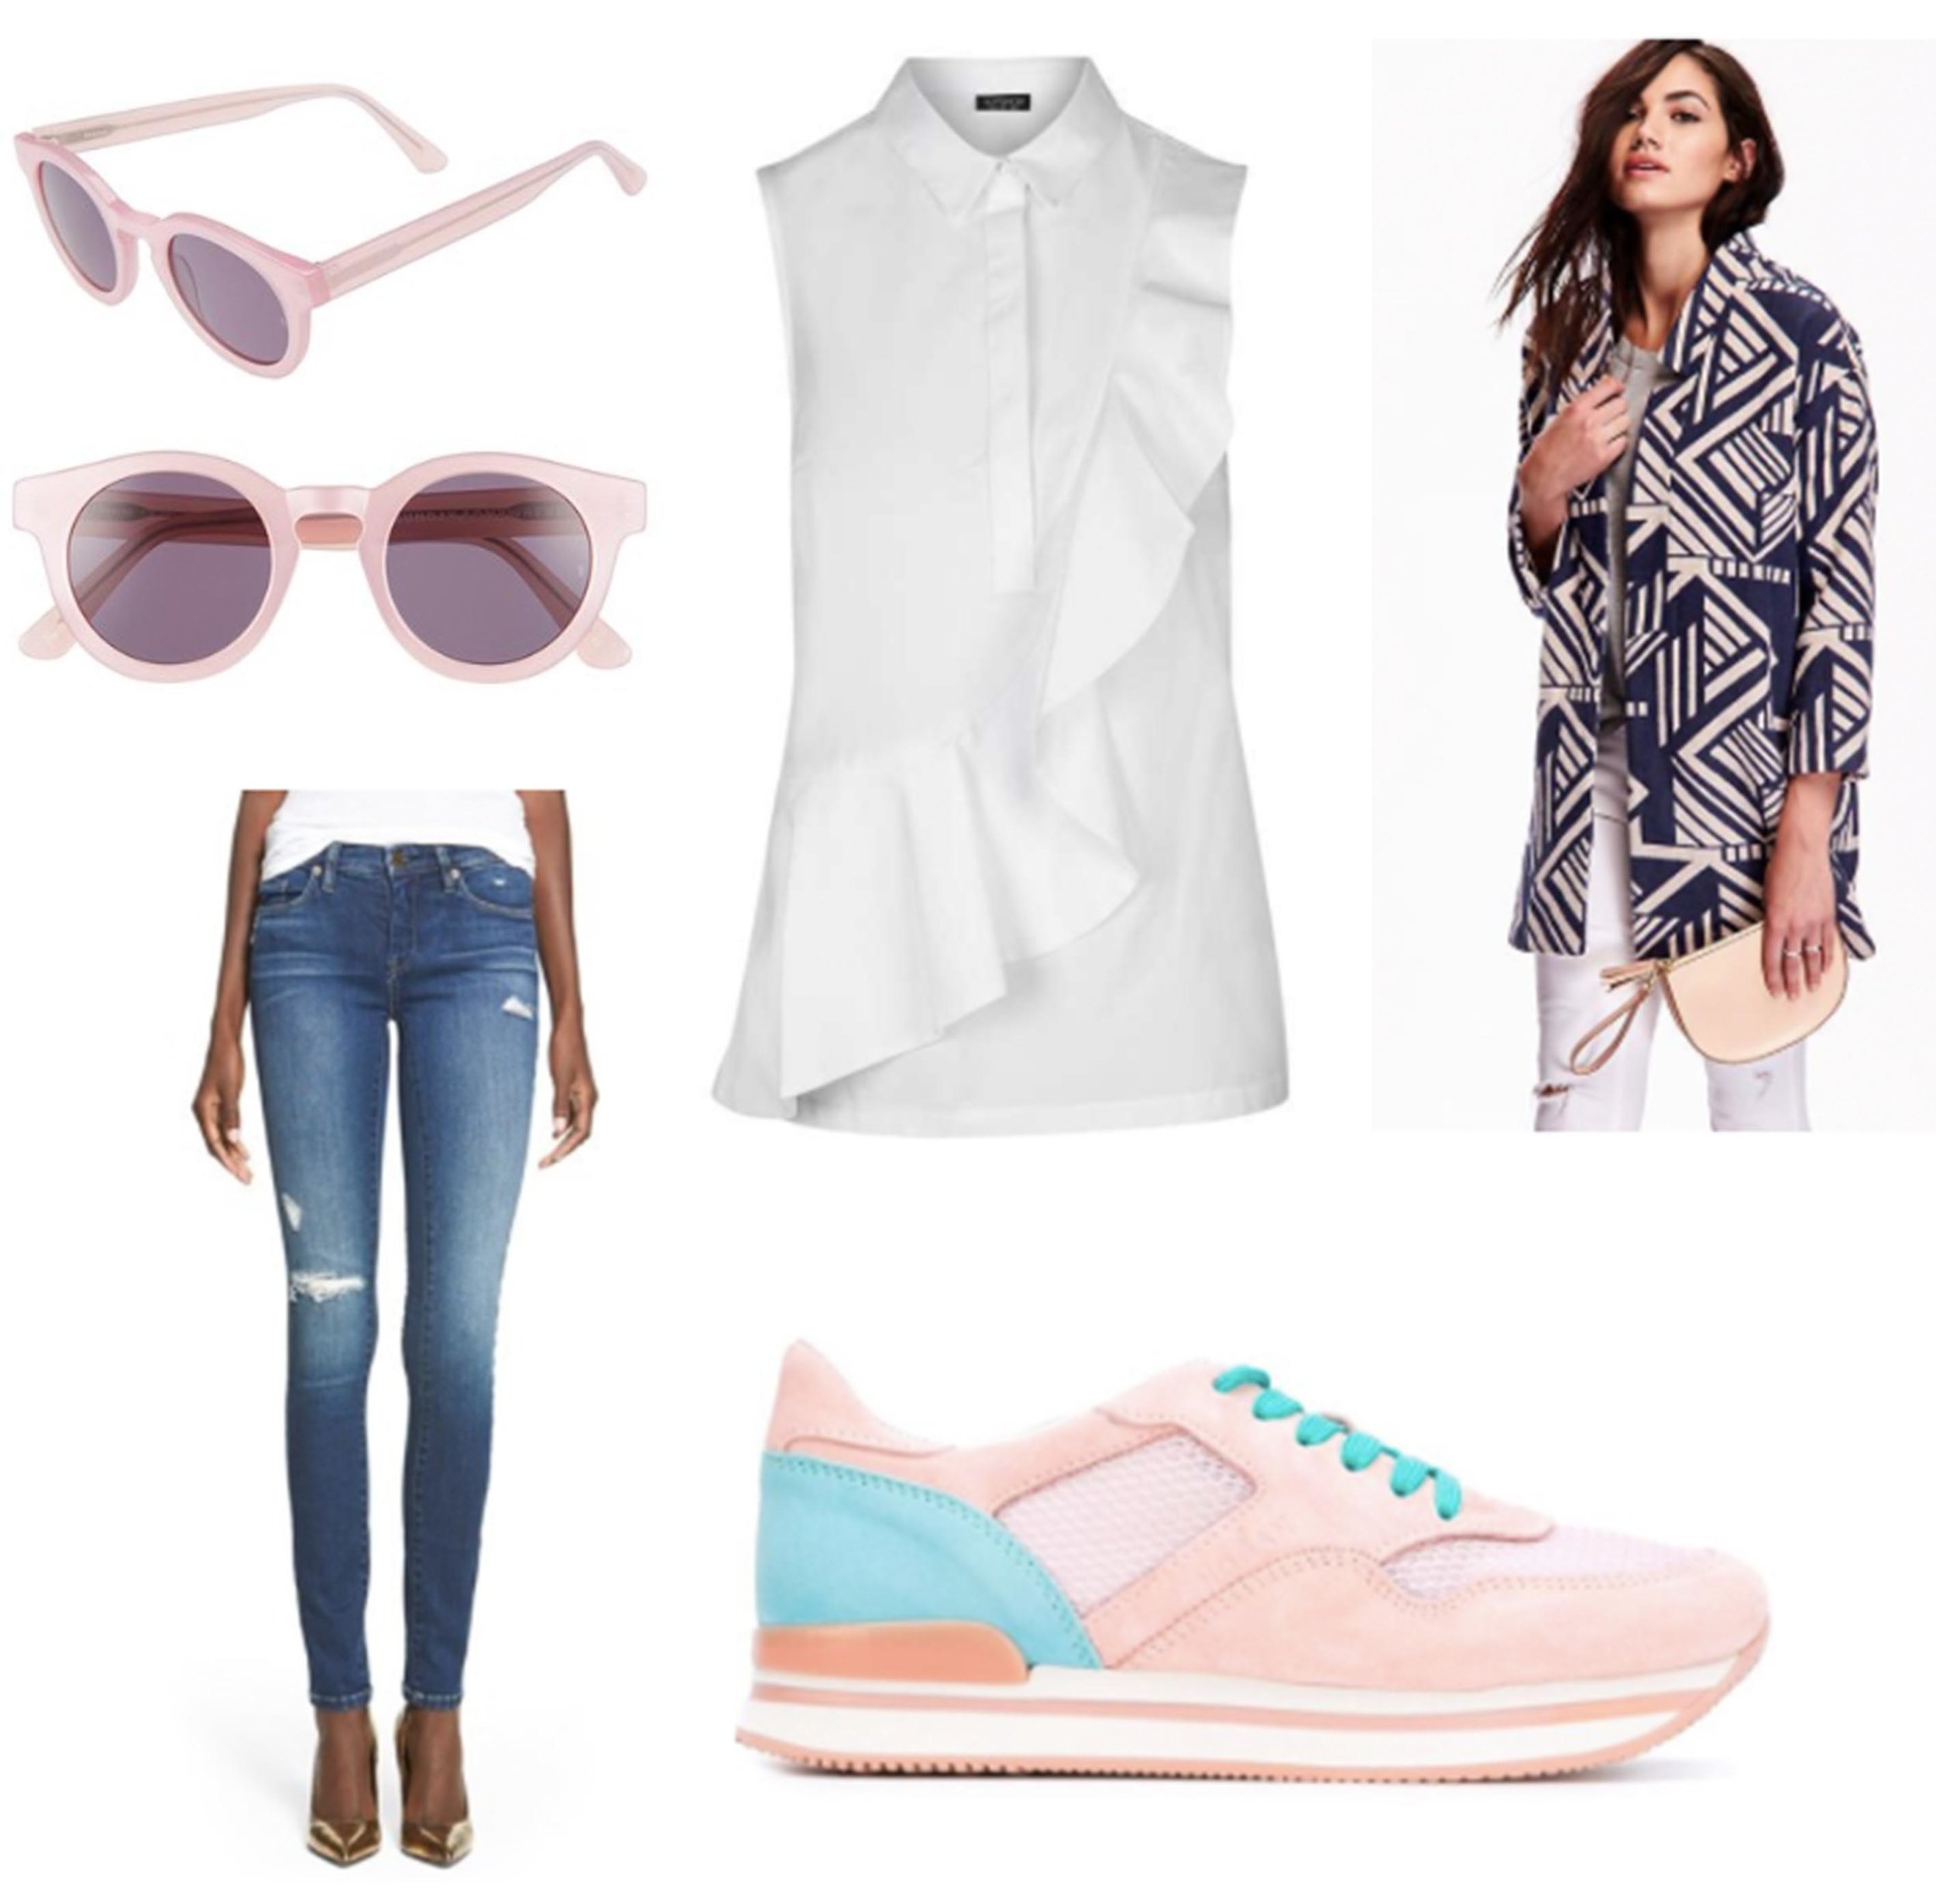 blue-navy-skinny-jeans-white-top-blouse-blue-navy-jacket-coat-print-pink-shoe-sneakers-sun-howtowear-fashion-style-outfit-spring-summer-brun-lunch.jpg